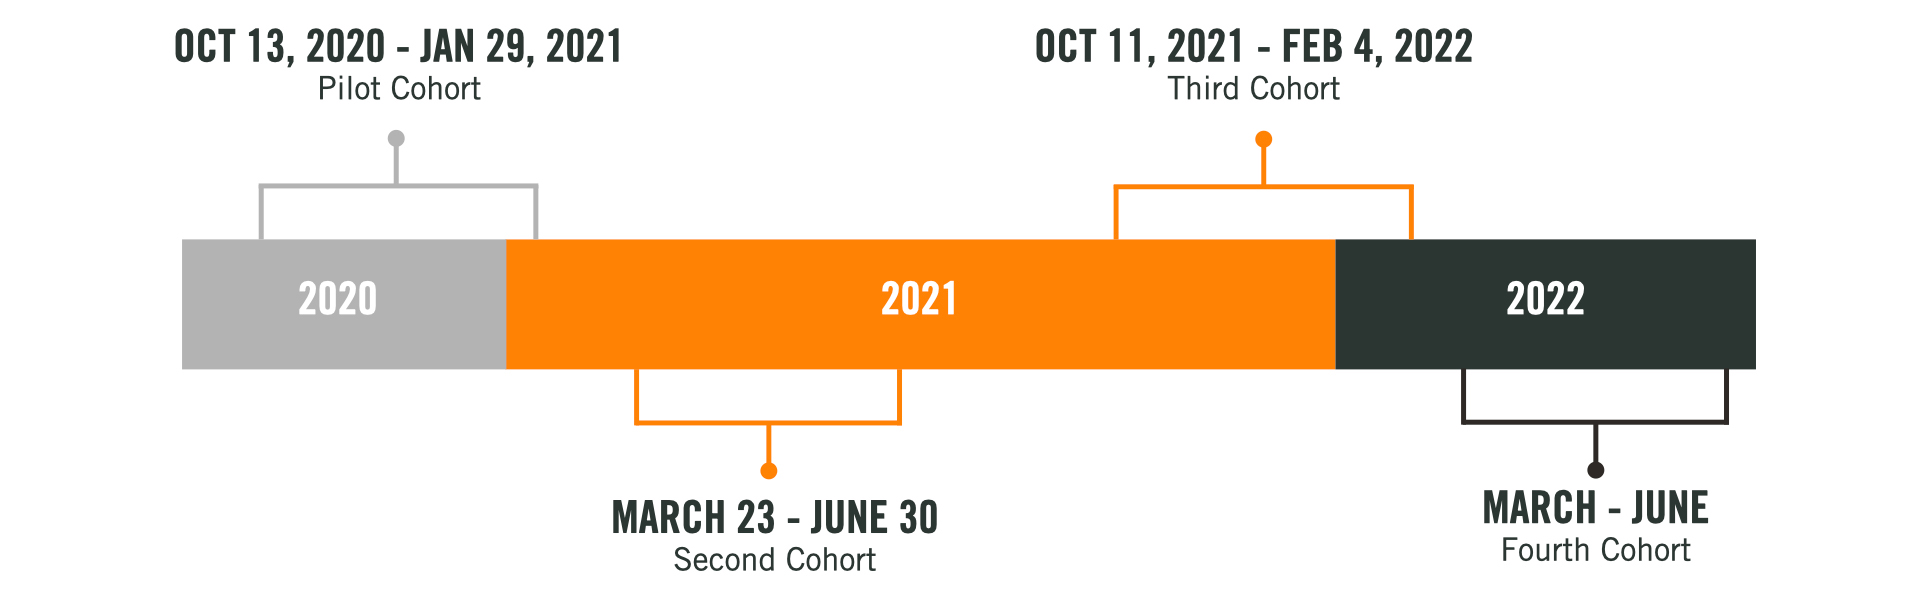 This is a line graph of the program's timeline. The program dates for the pilot cohort ran from October 13, 2020, until January 29, 2021. The program dates for the second cohort ran from March 23, 2021, until June 30, 2021. The third cohort will run from October 11, 2021, until February 4, 2022. There will be one more cohort in the spring of 2022, from March through October.